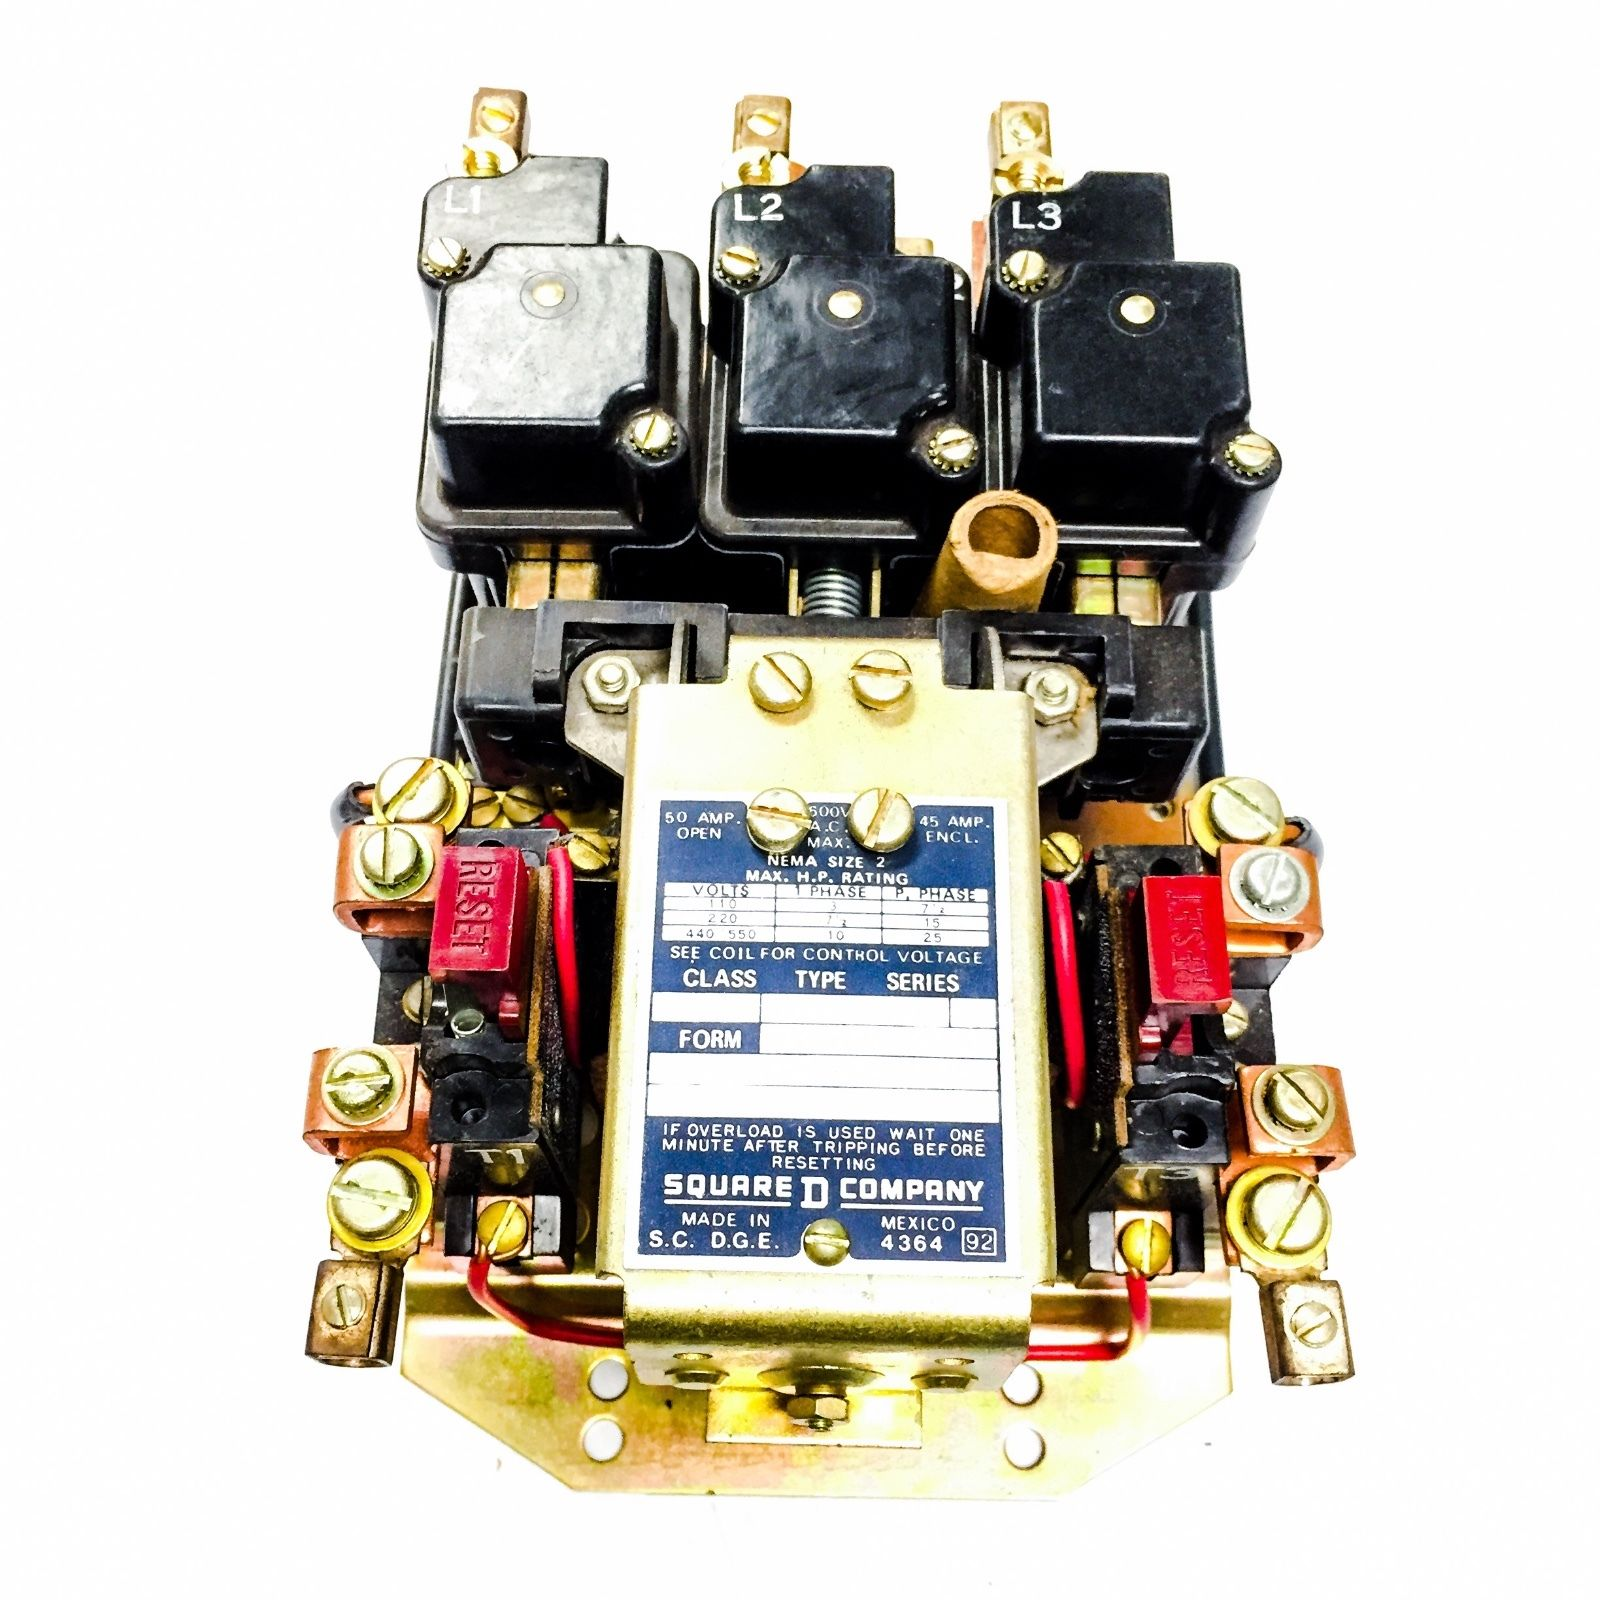 Square D Contactor, Size 2 Class 8536, 120V Coil,